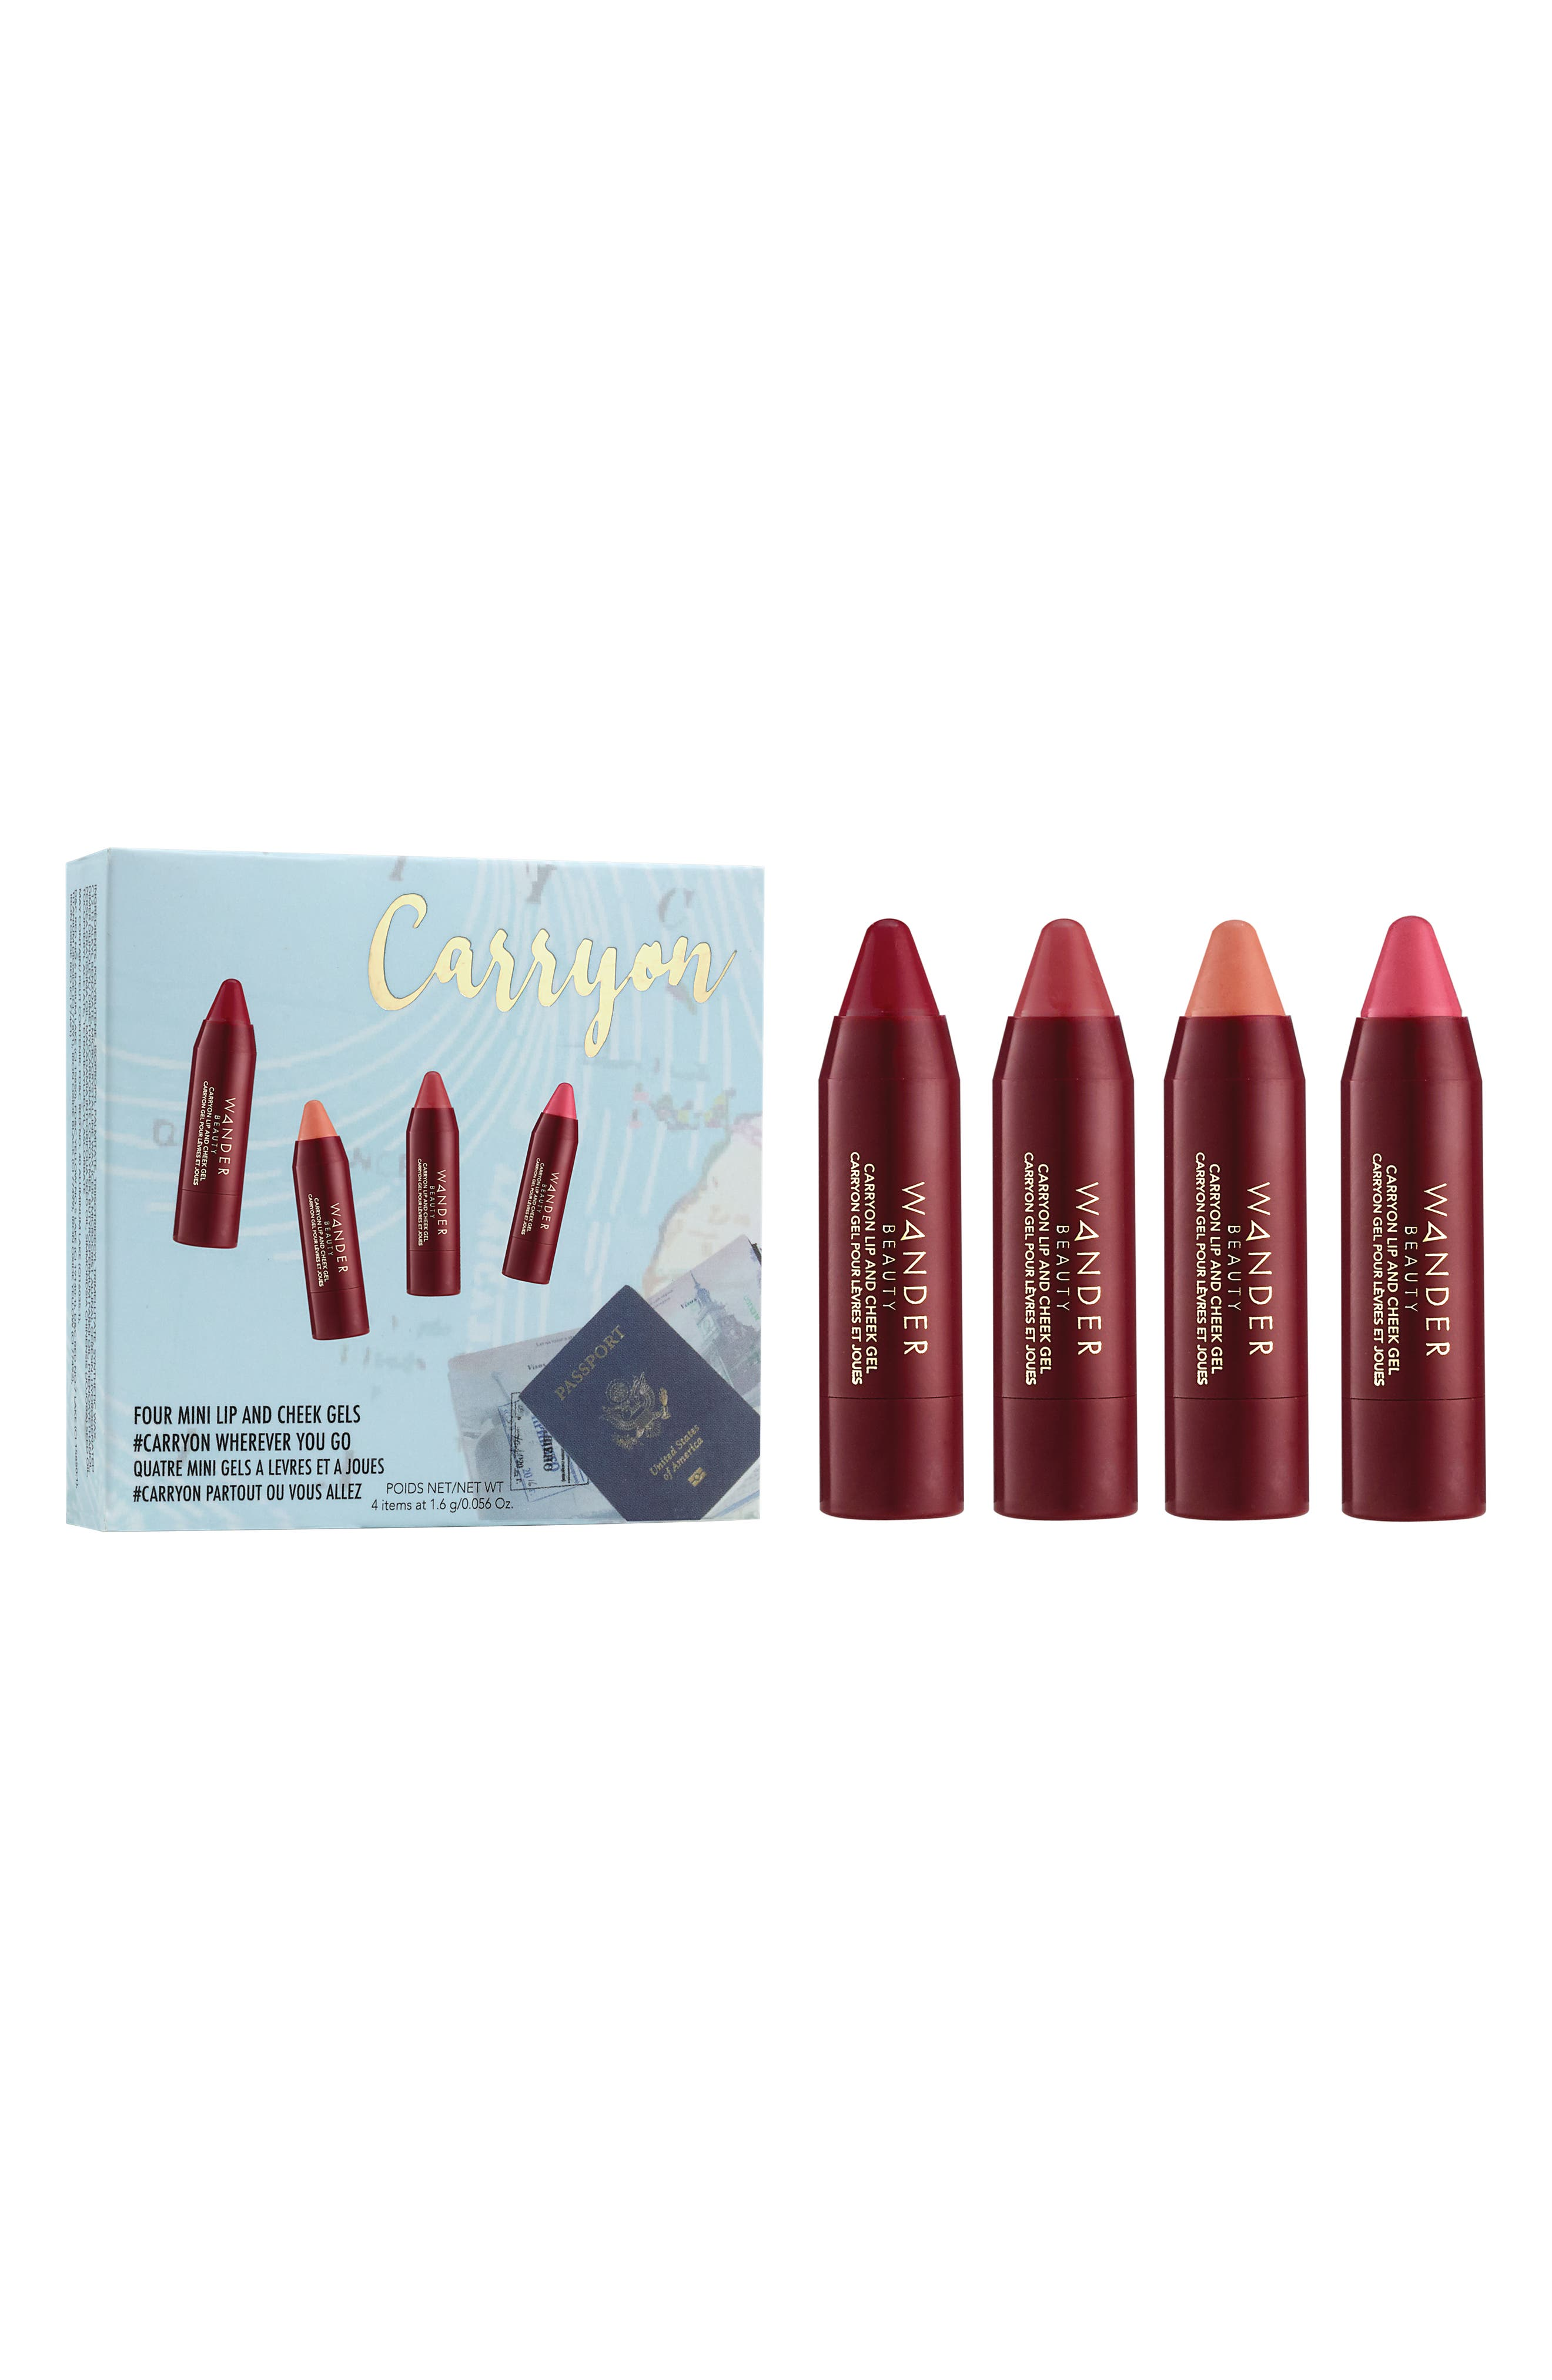 Wander Beauty Mini Carryon Lip and Cheek Gels Kit ($48 Value)